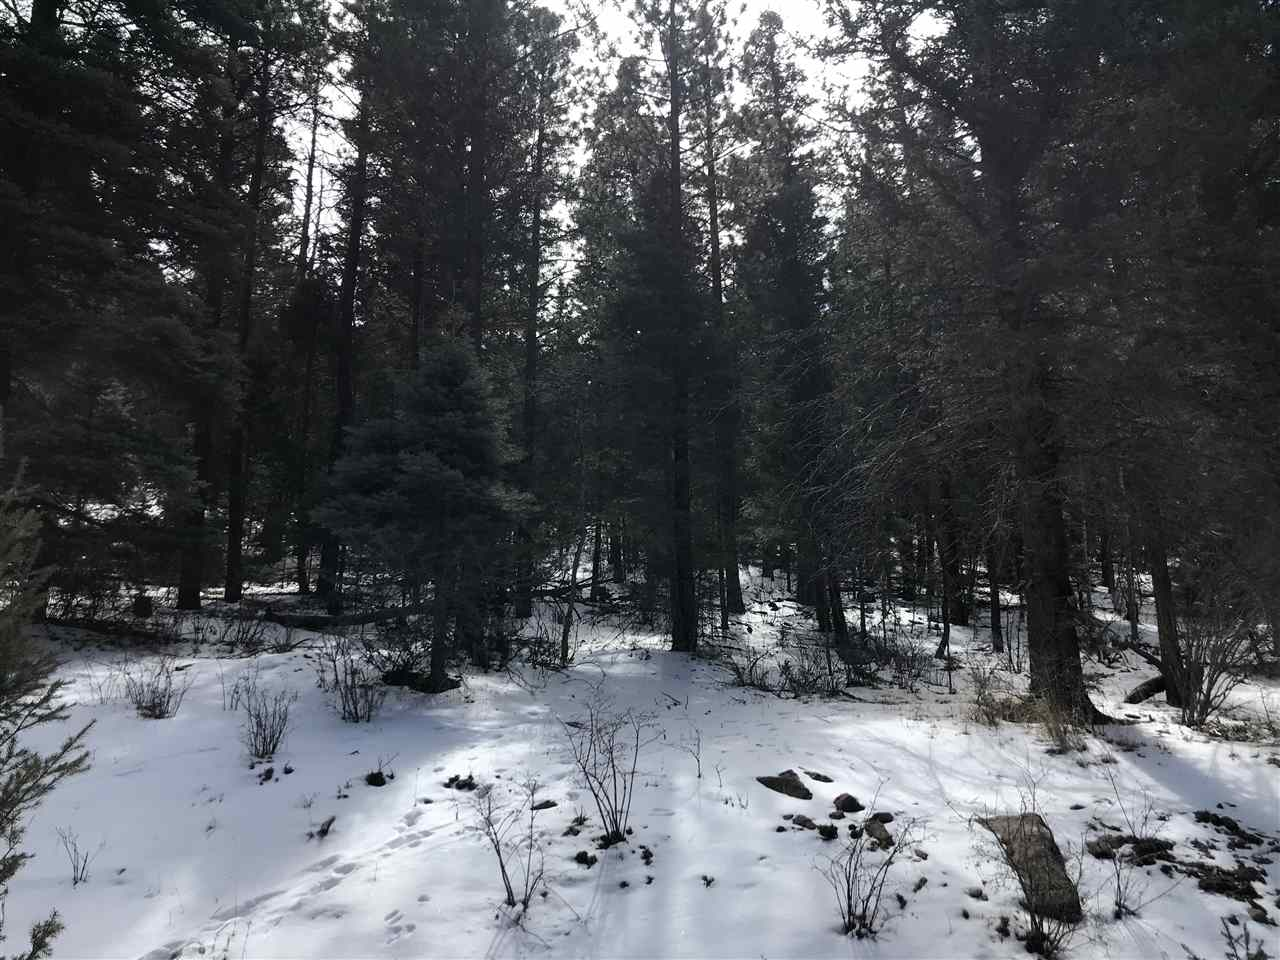 Wonderful 1.19 acre lot, zoned for High Density and just a stones throw to the resort. Once lot is thinned, will have great Wheeler Peak views as well as many other areas of Angel Fire.